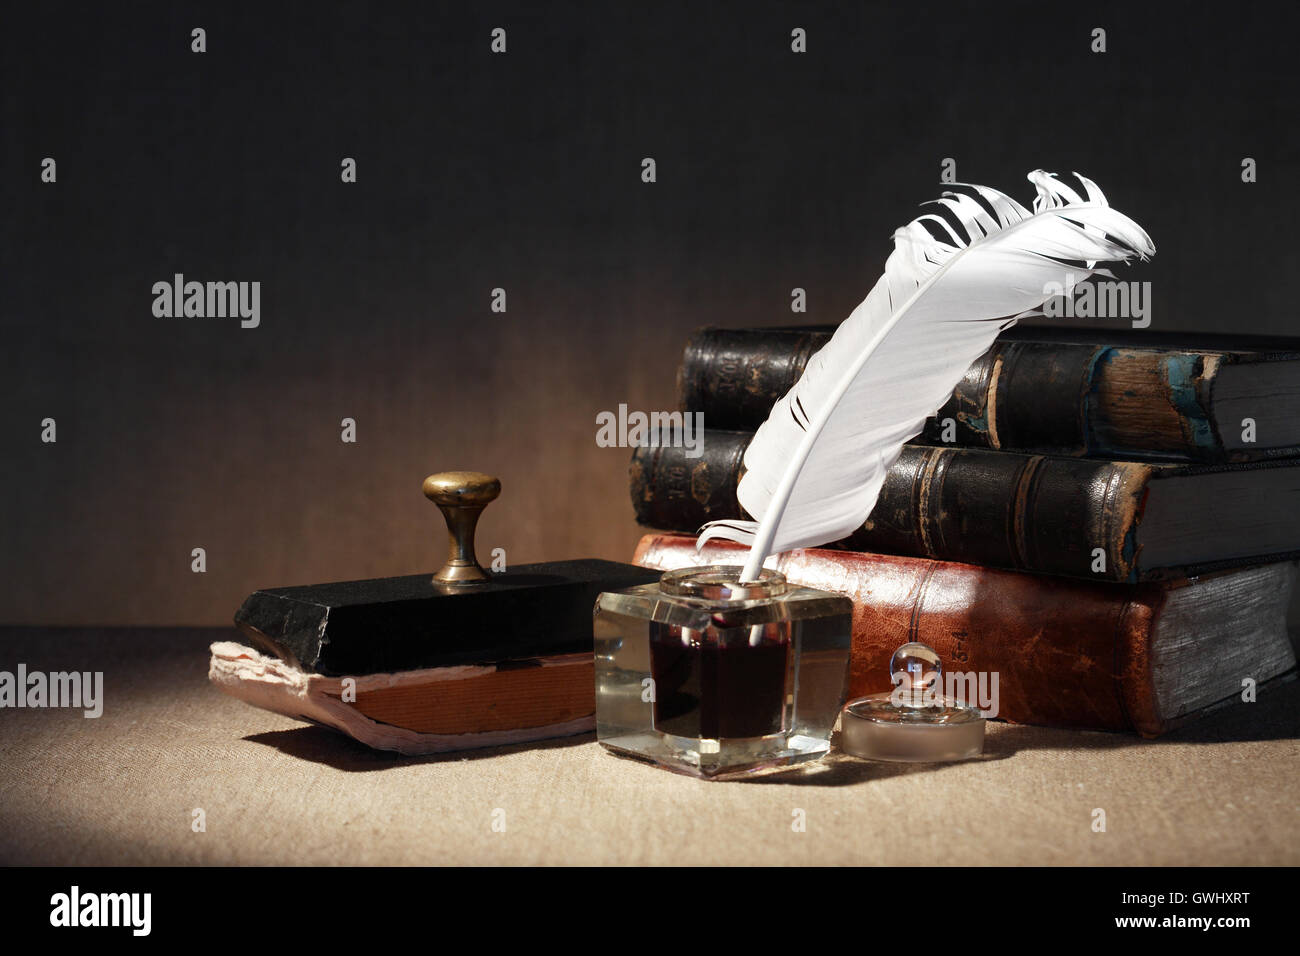 literature symbol stock photo royalty image alamy literature symbol